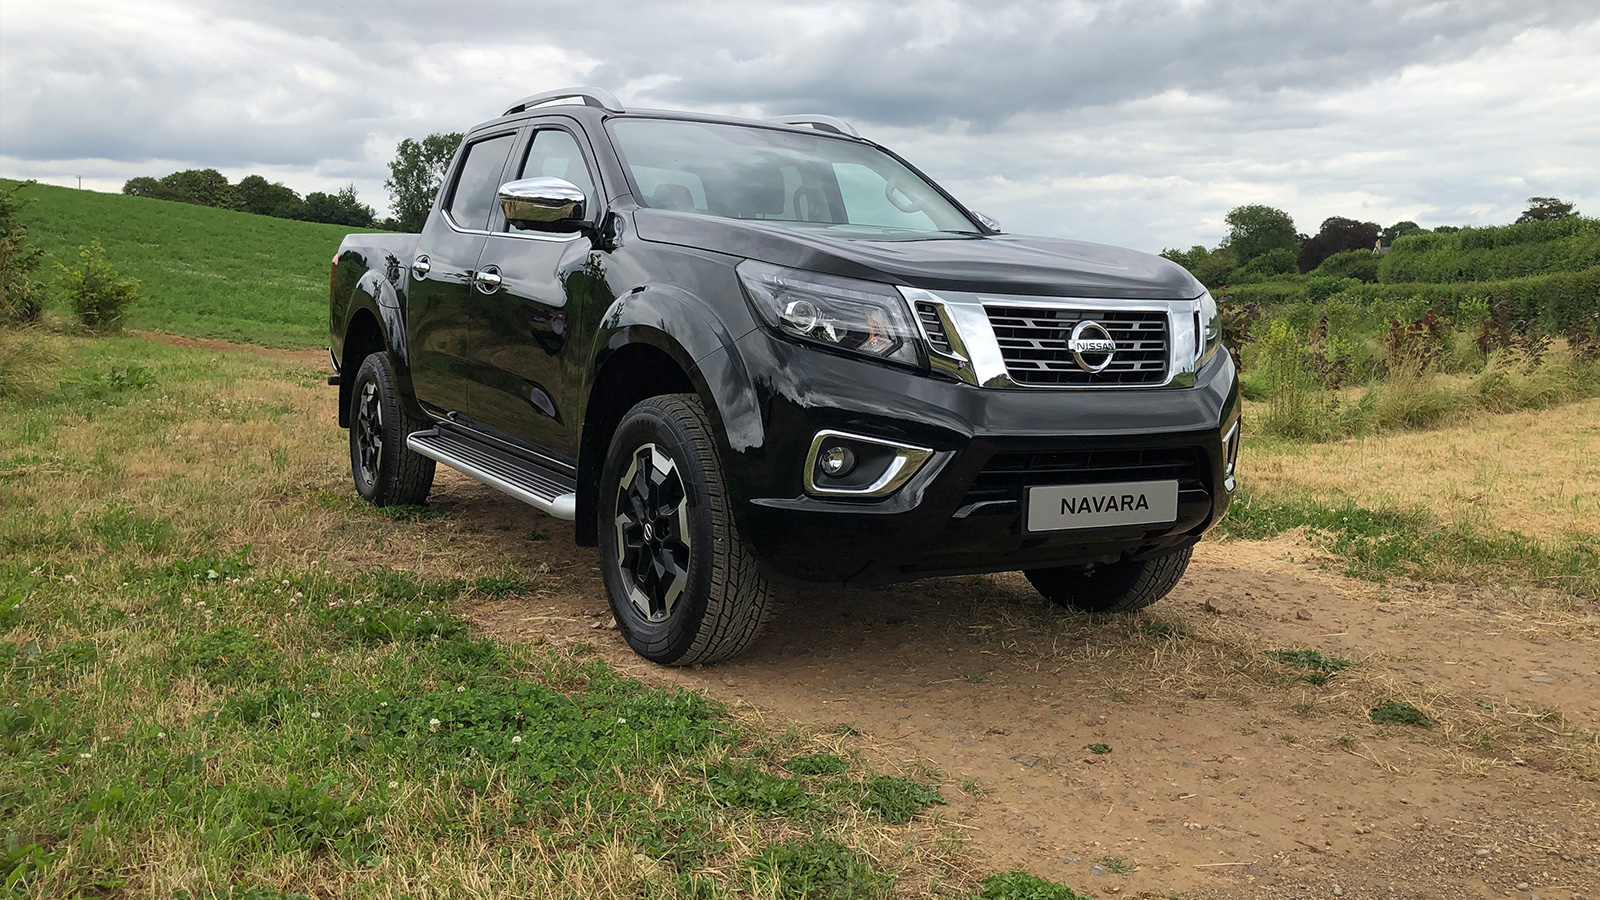 TALK TO THE NAVARA EXPERTS